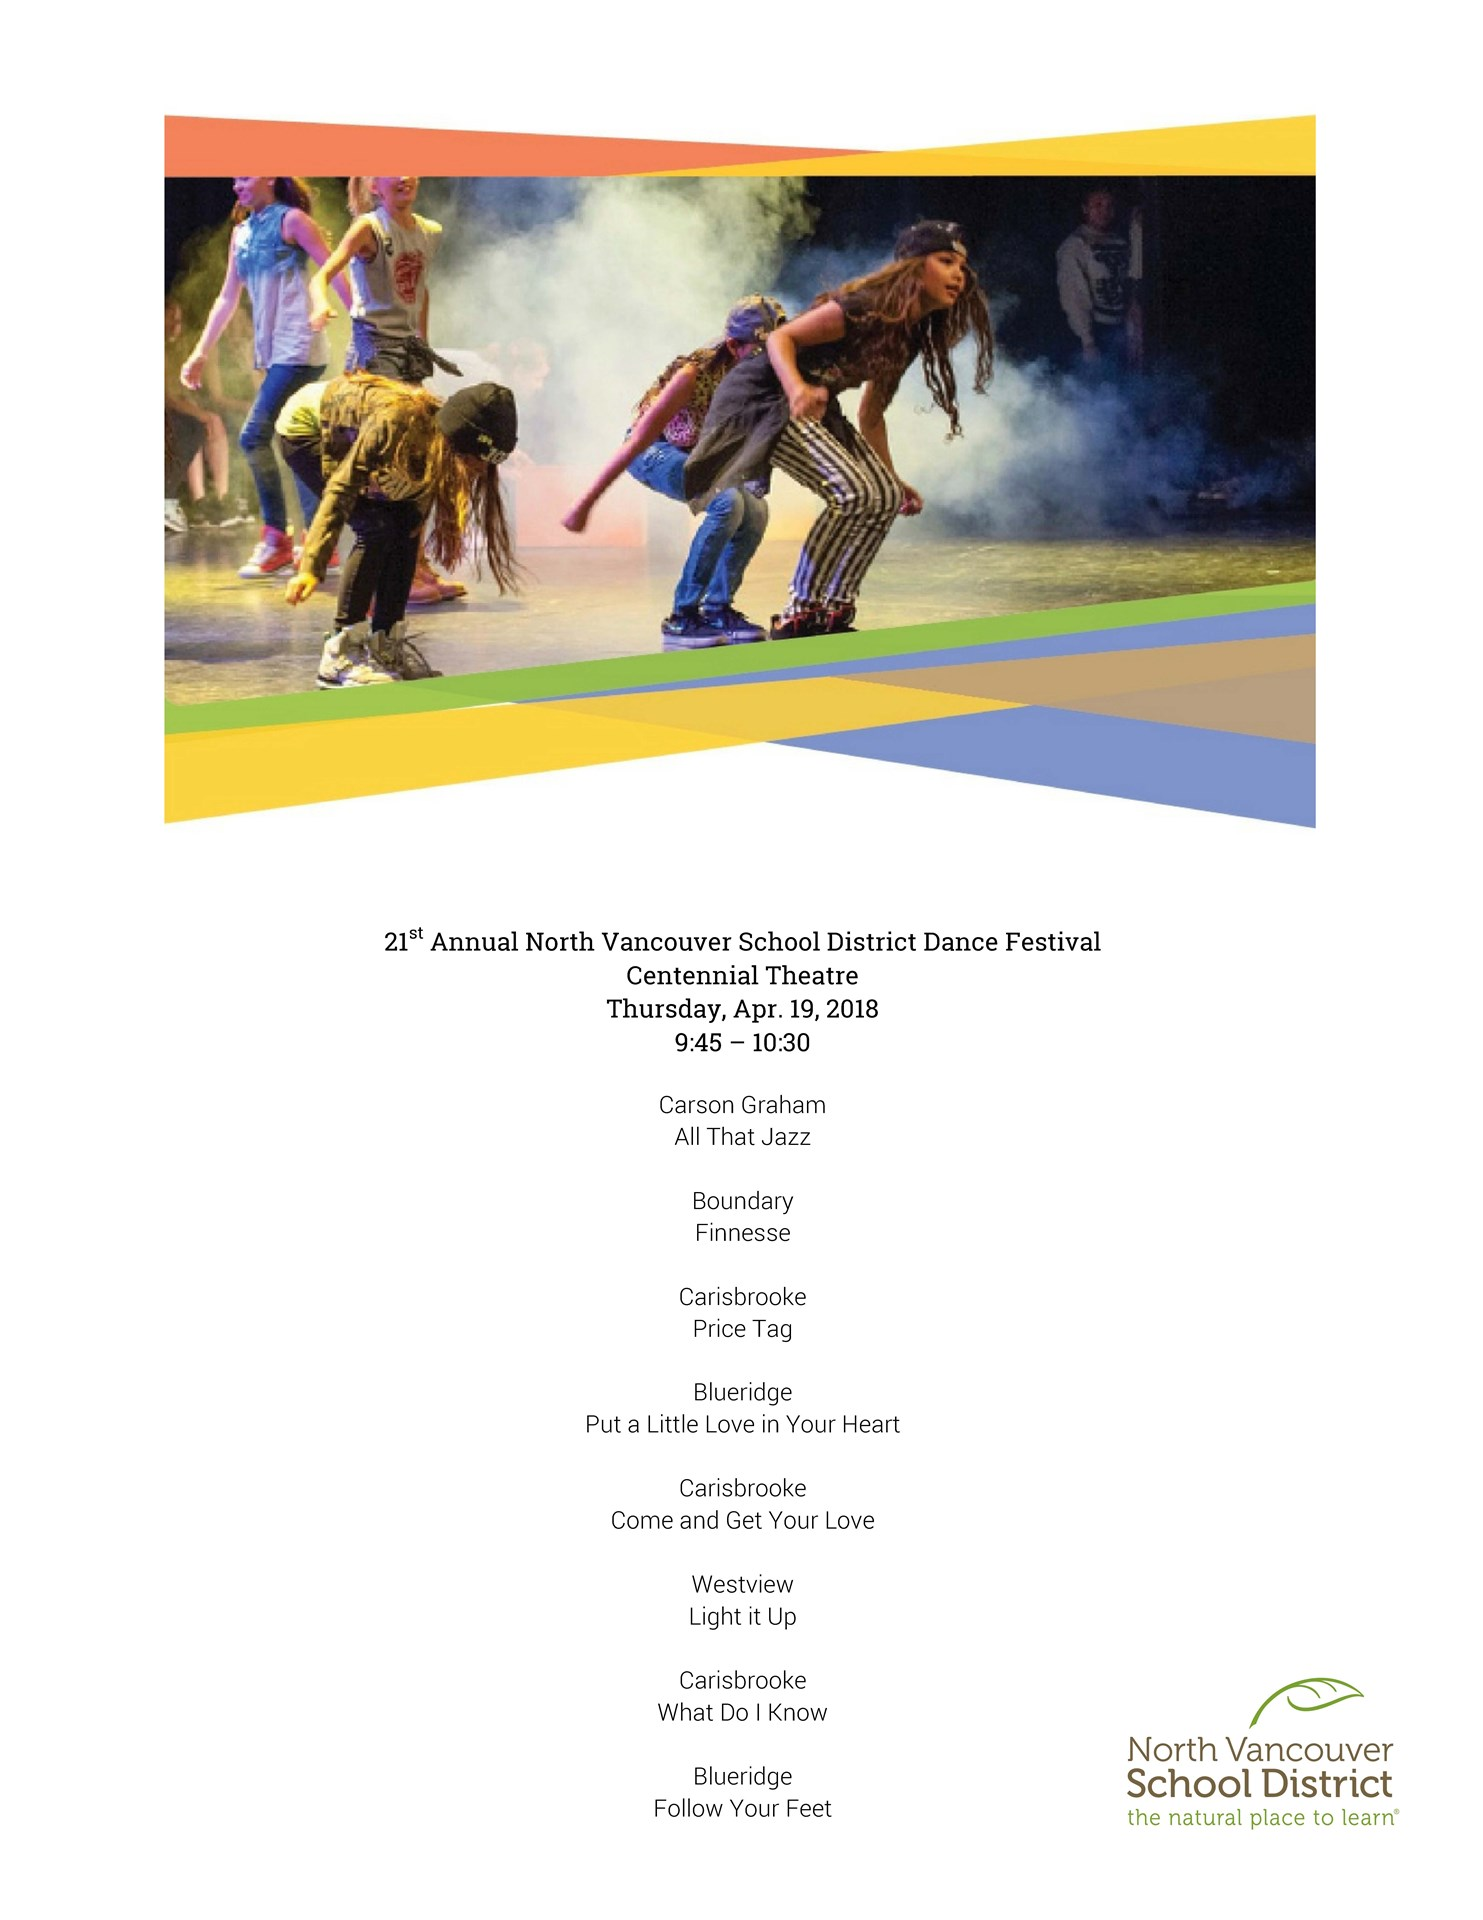 NVSD%20Dance%20Festival%20Program%20April%202018_Page_1.jpg